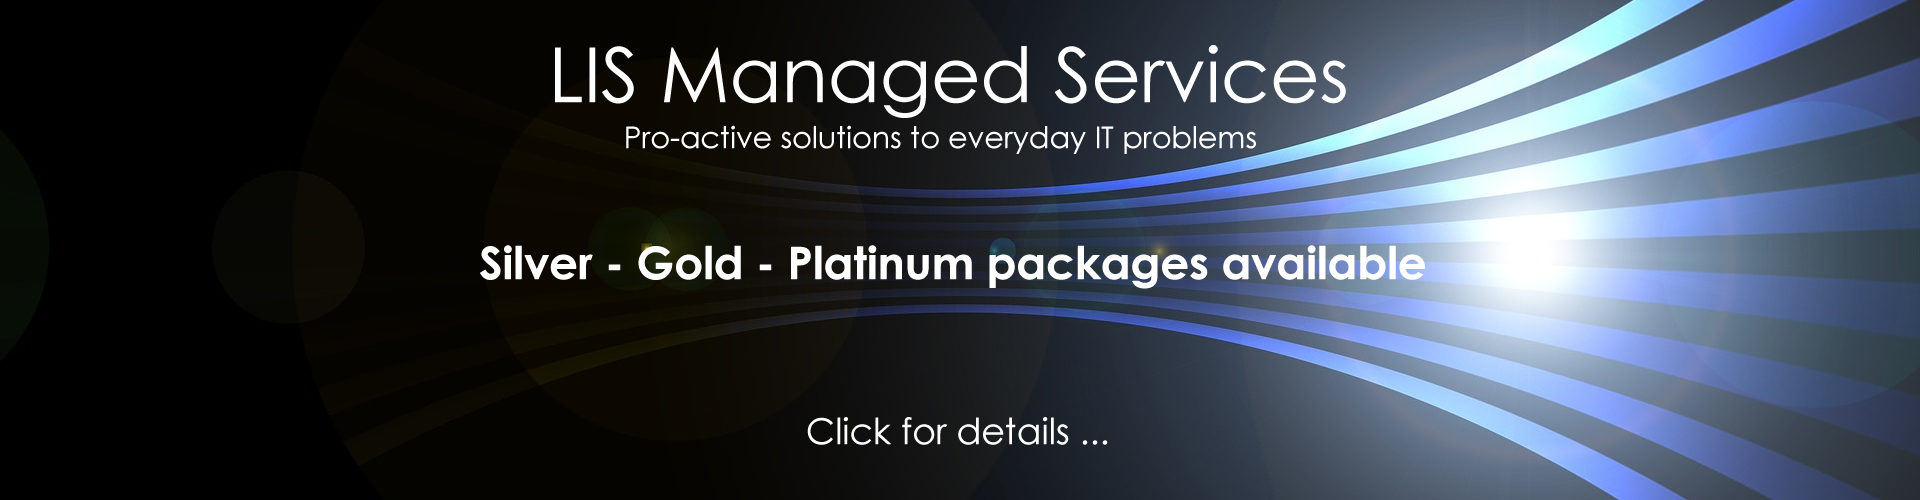 Managed IT Services for companies in Essex London and UK